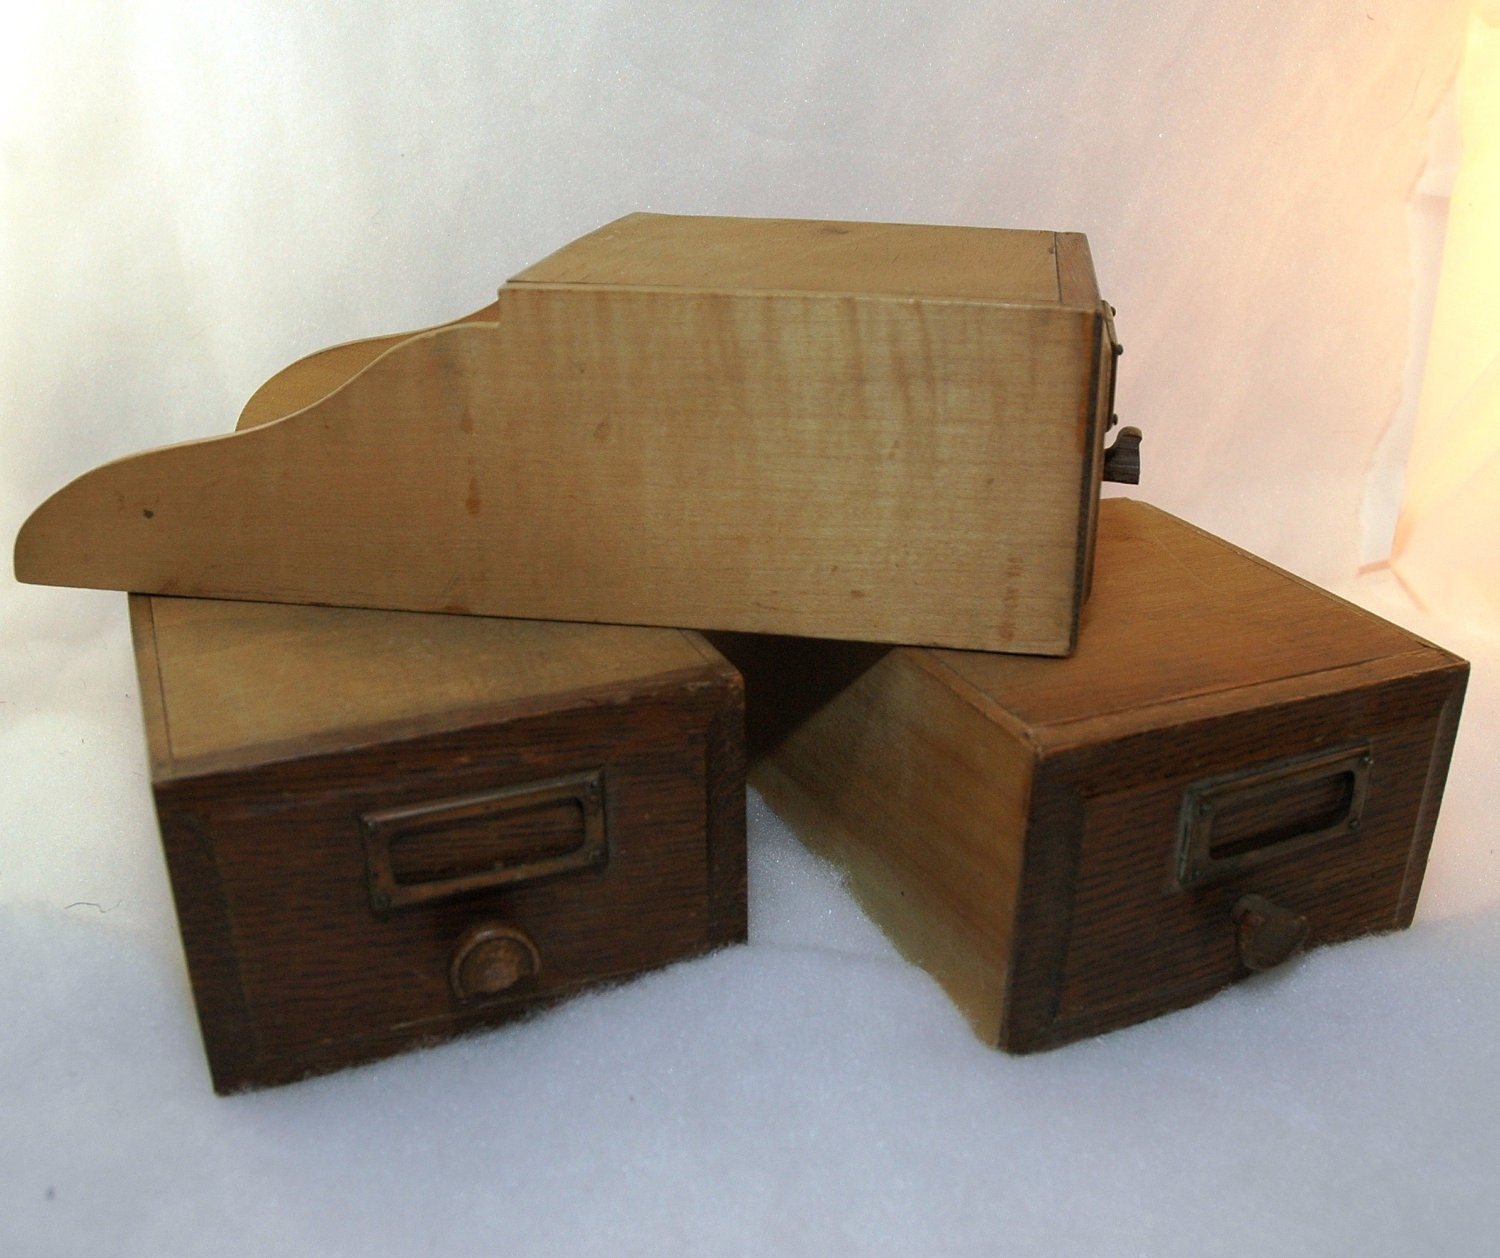 Roll Top Desk Drawers Wooden Cubby Covers Set Of 3